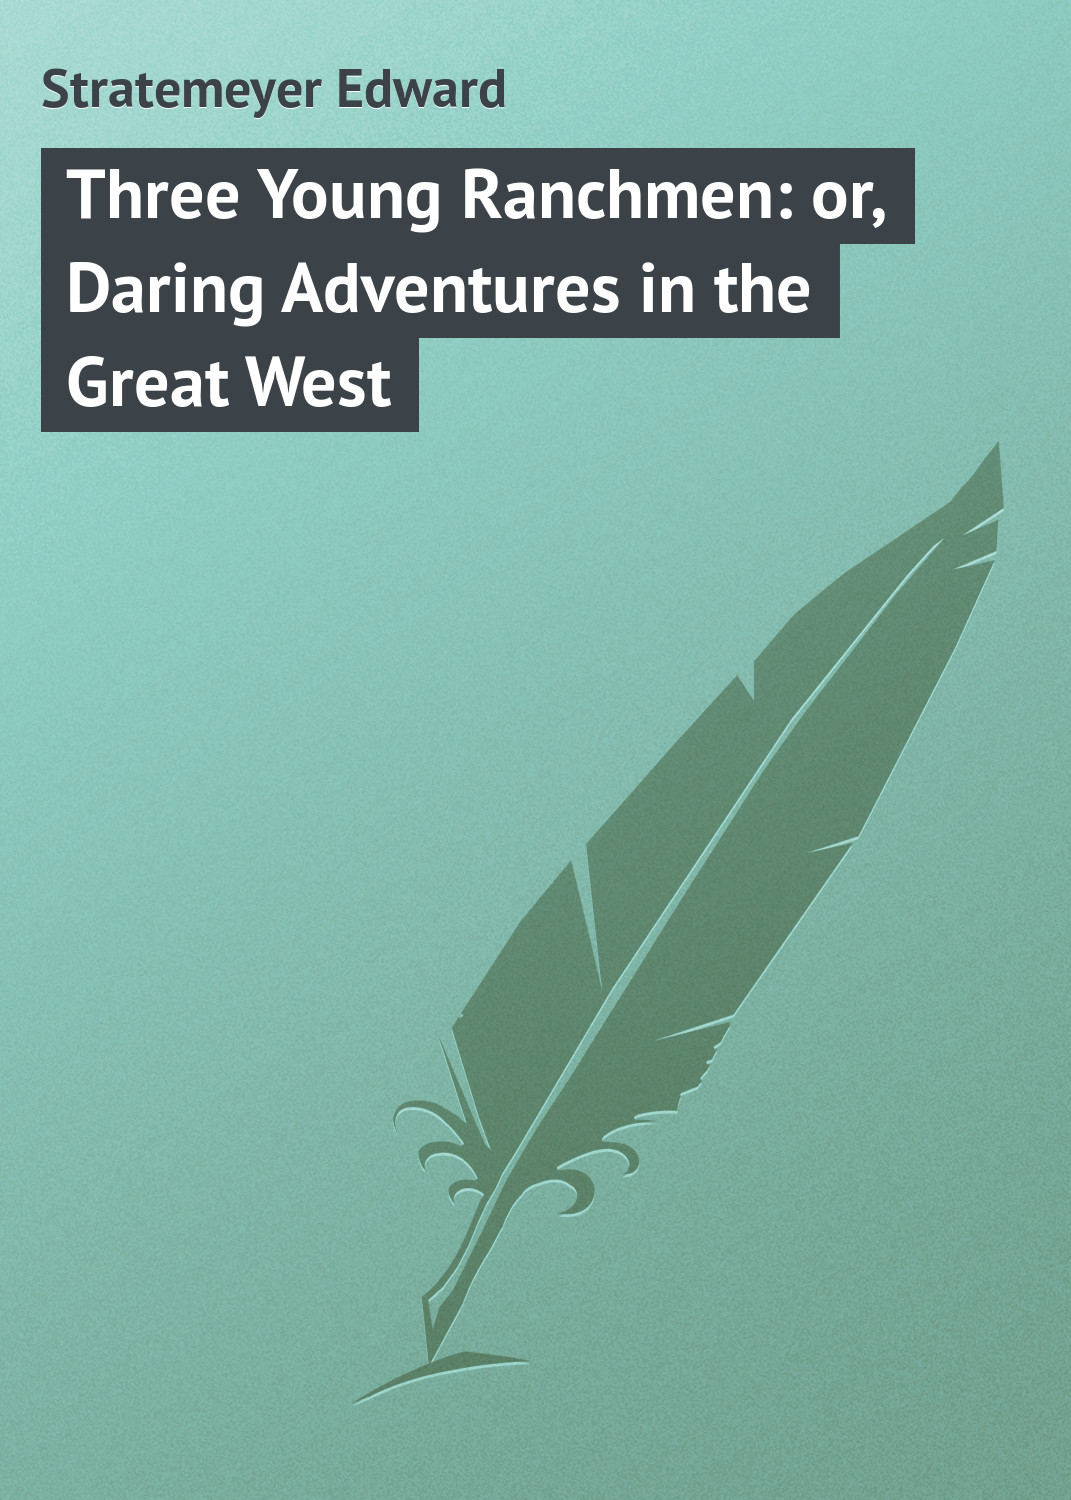 Stratemeyer Edward Three Young Ranchmen: or, Daring Adventures in the Great West